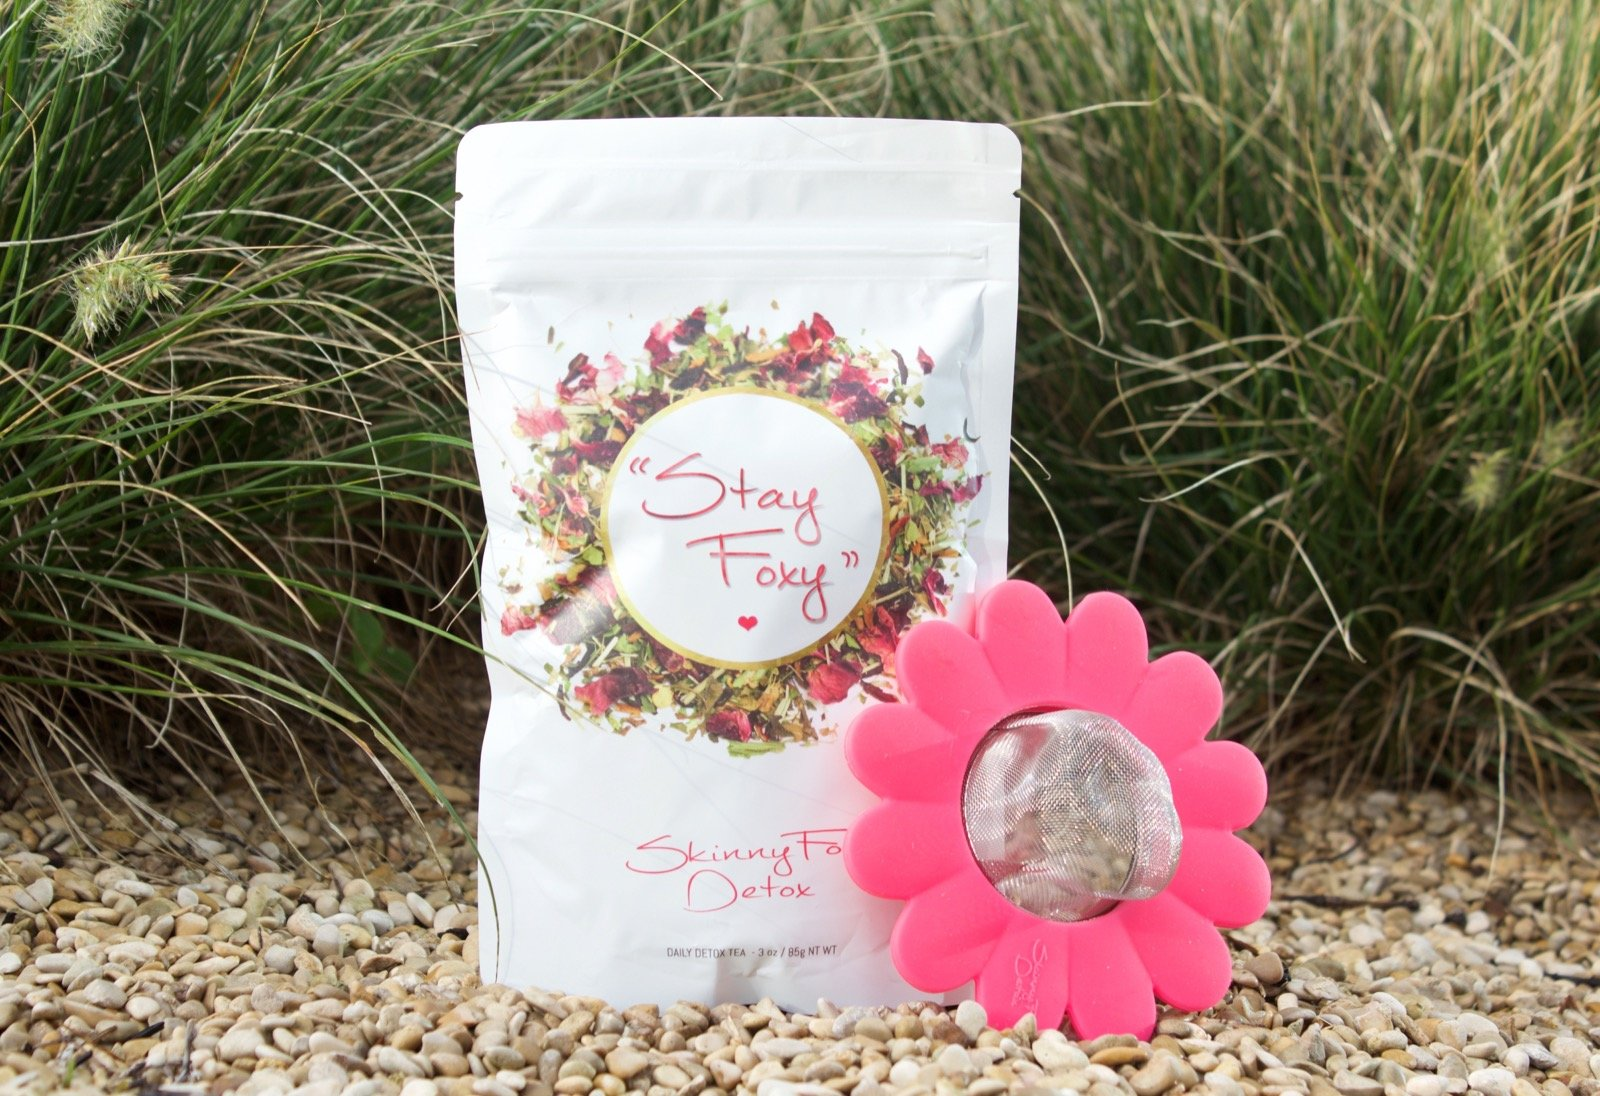 jennaminnie jenna minnie fashion blog skinny fox detox tea scrub skinnyfoxdetox